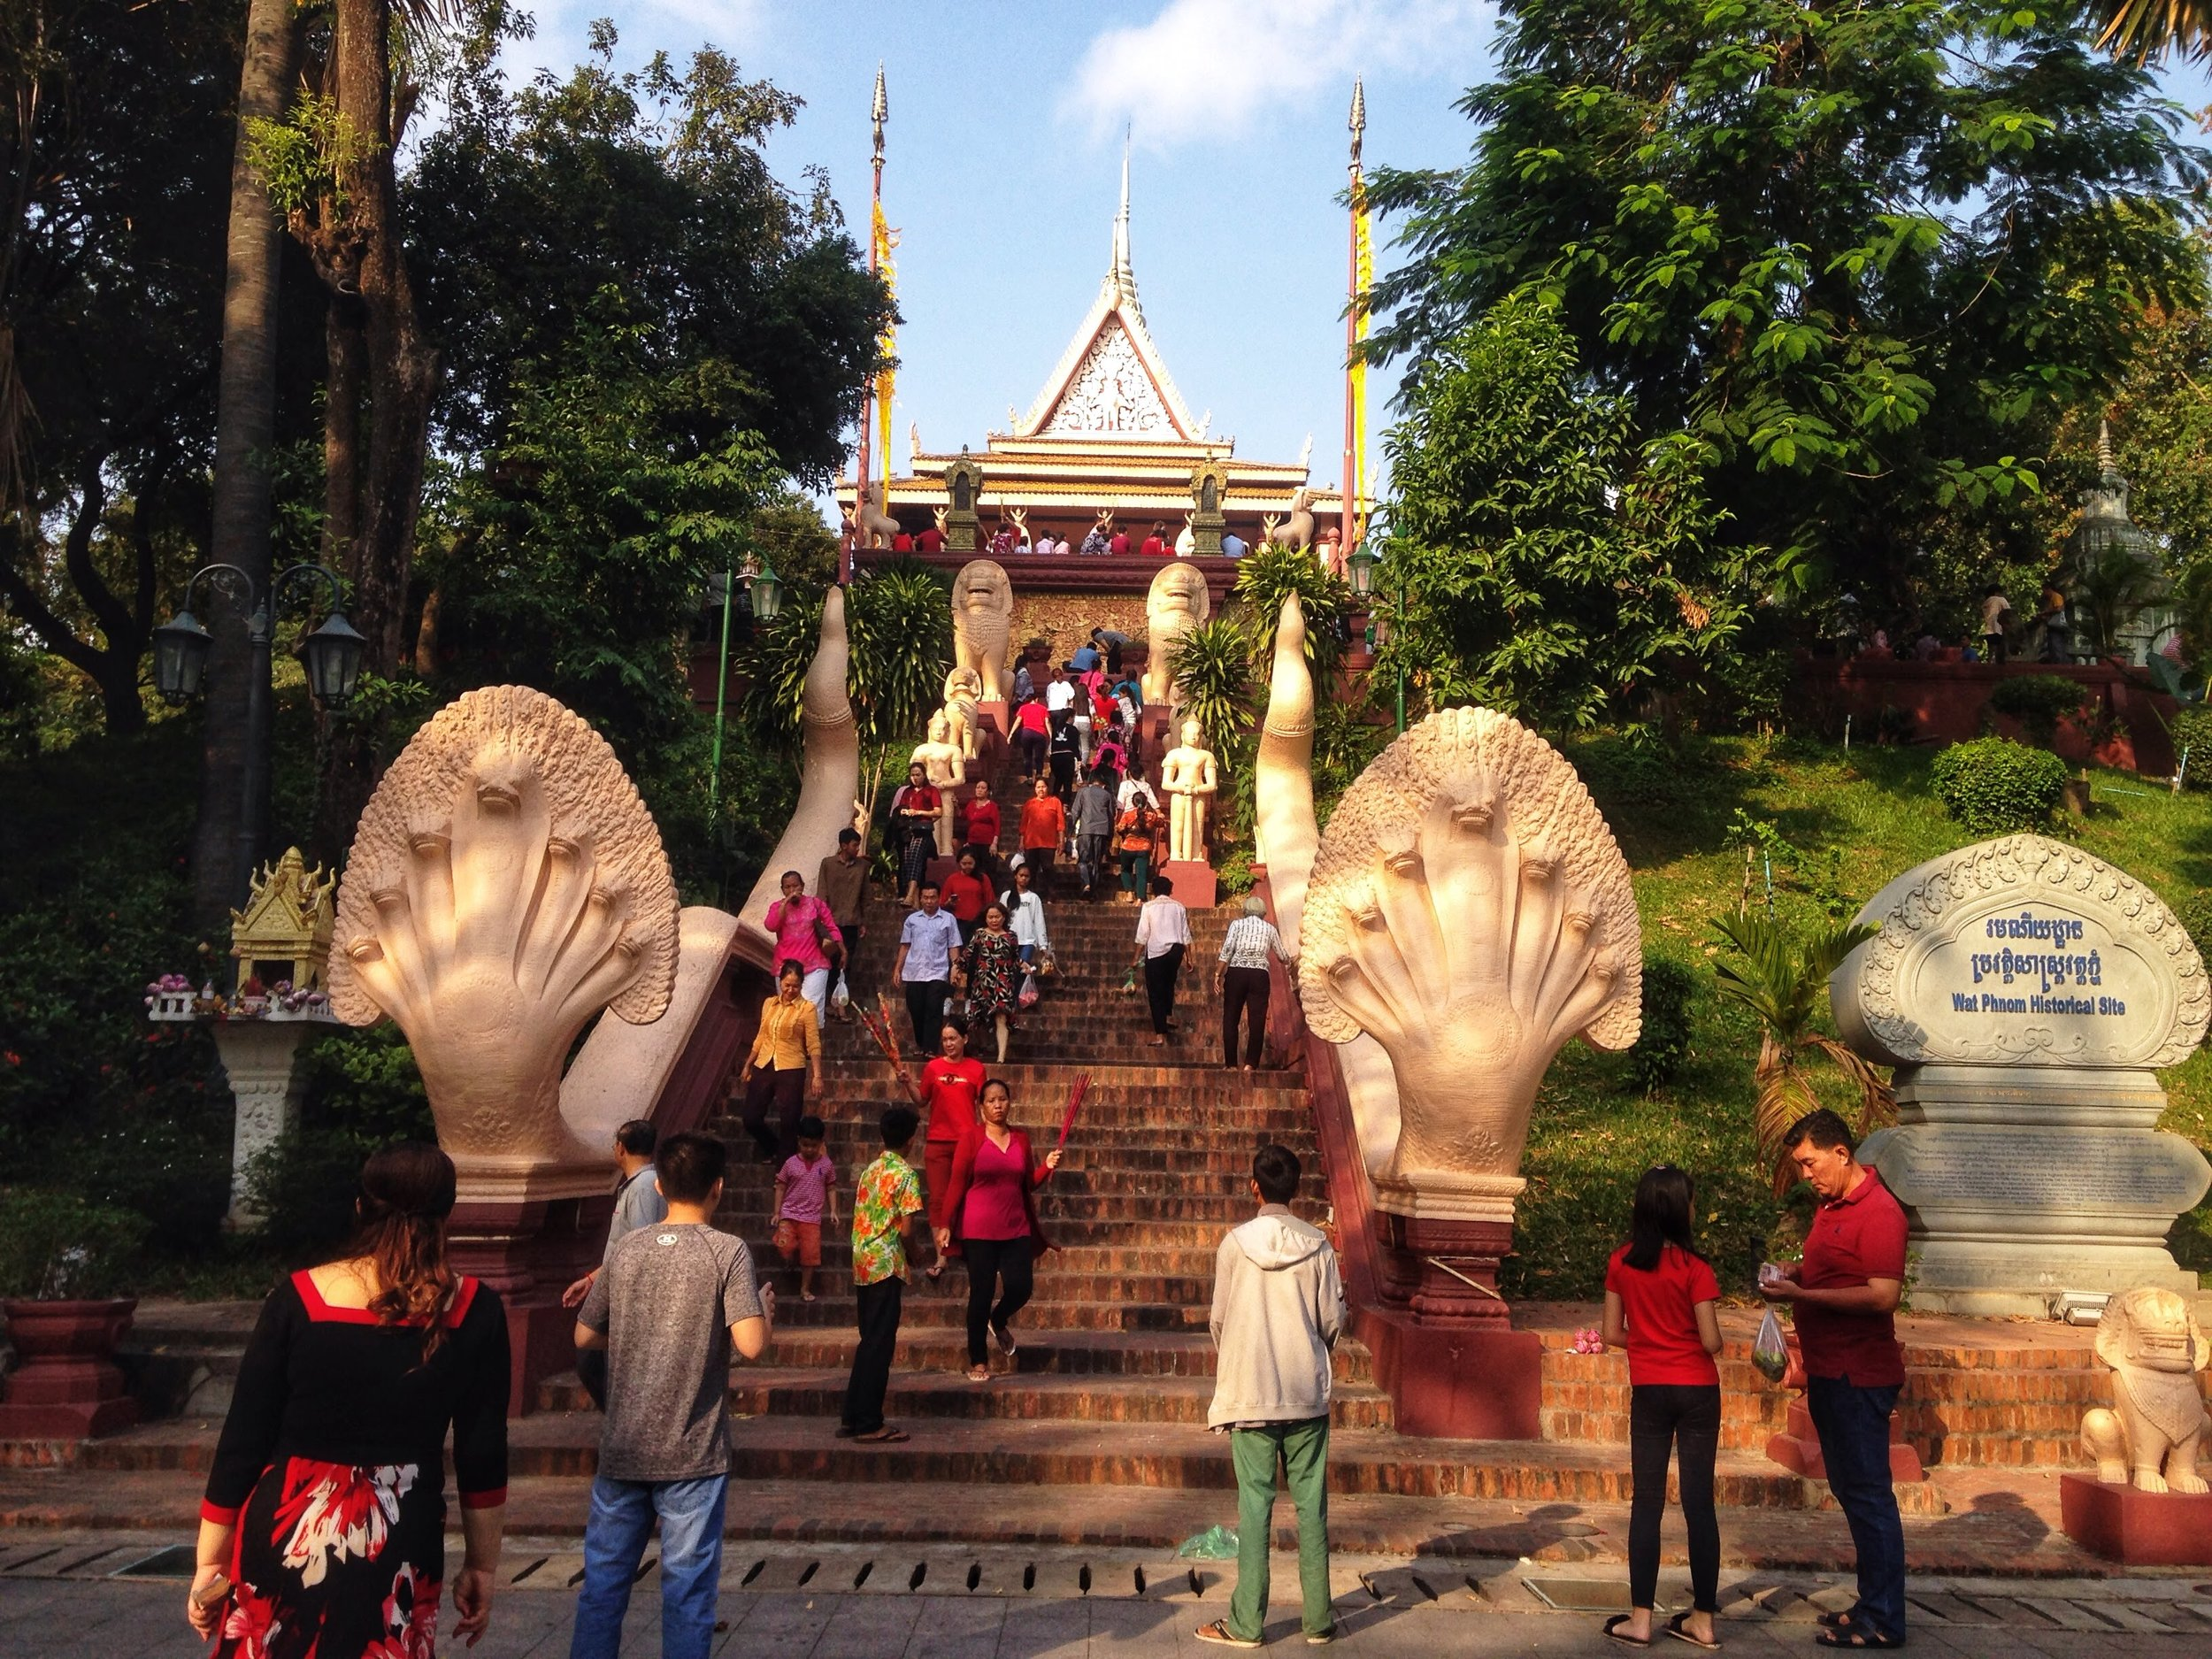 the entrance to Wat Phnom